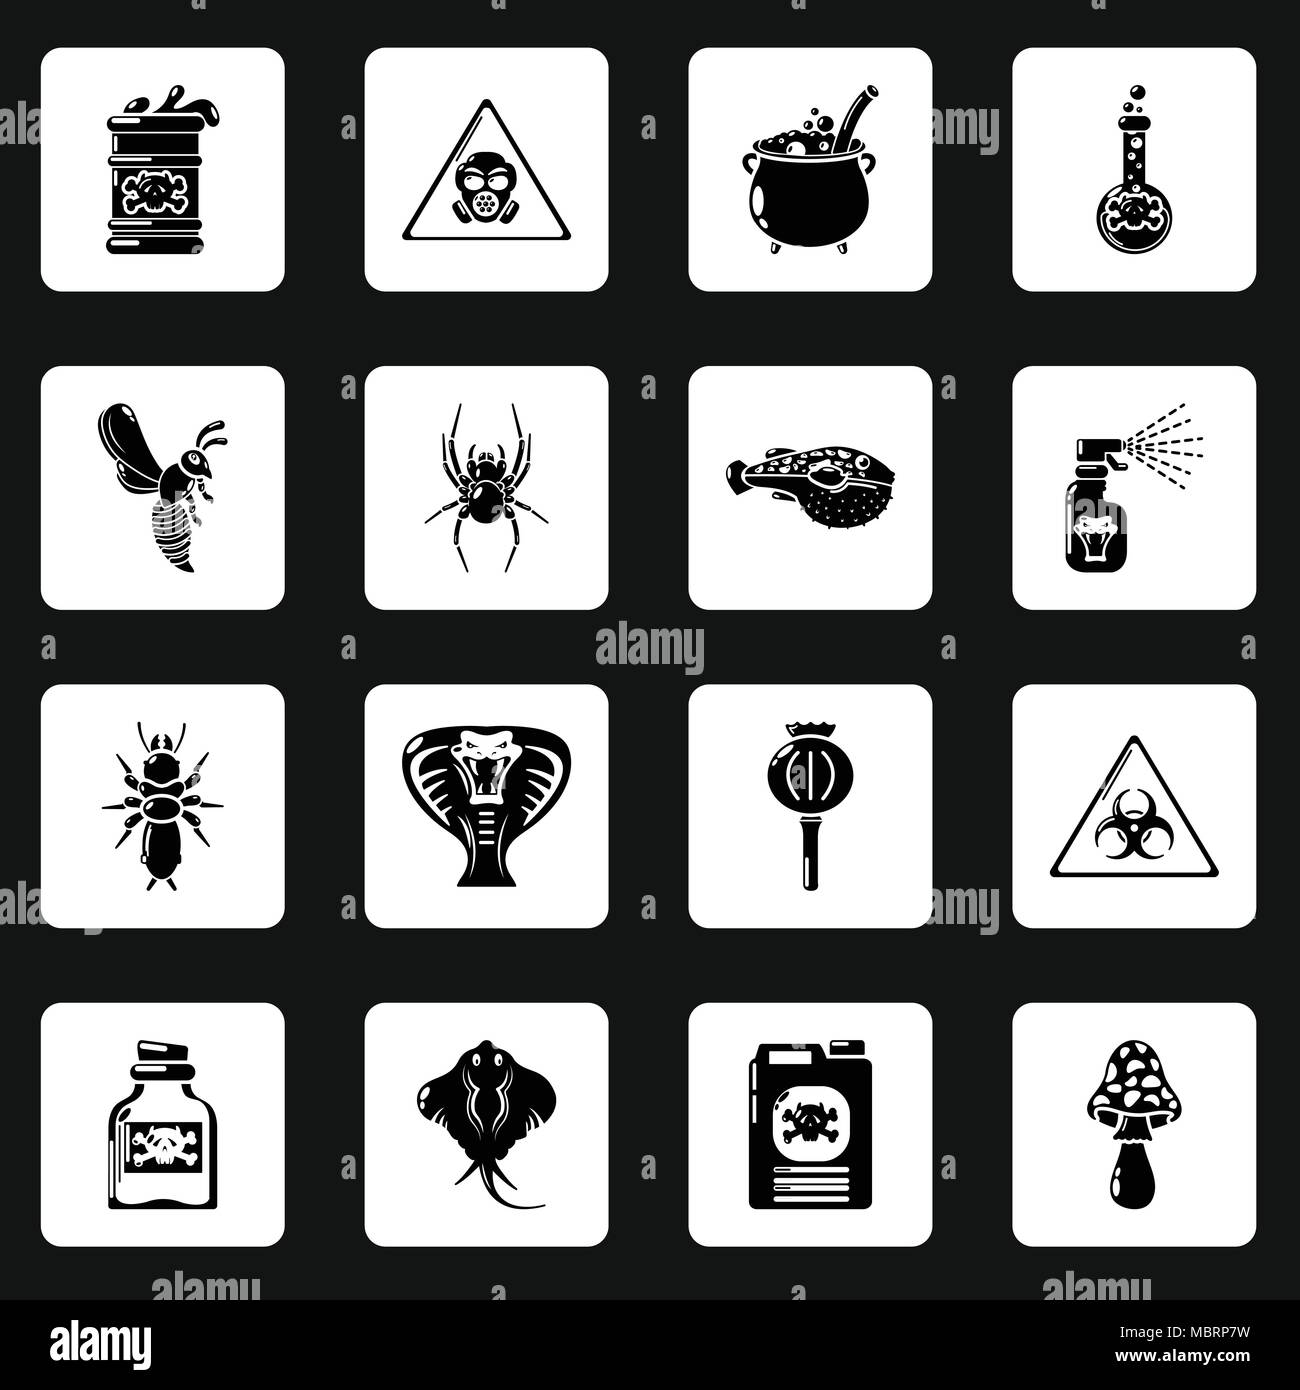 Rat poison warning sign stock photos rat poison warning sign poison danger toxic icons set simple style stock image biocorpaavc Image collections